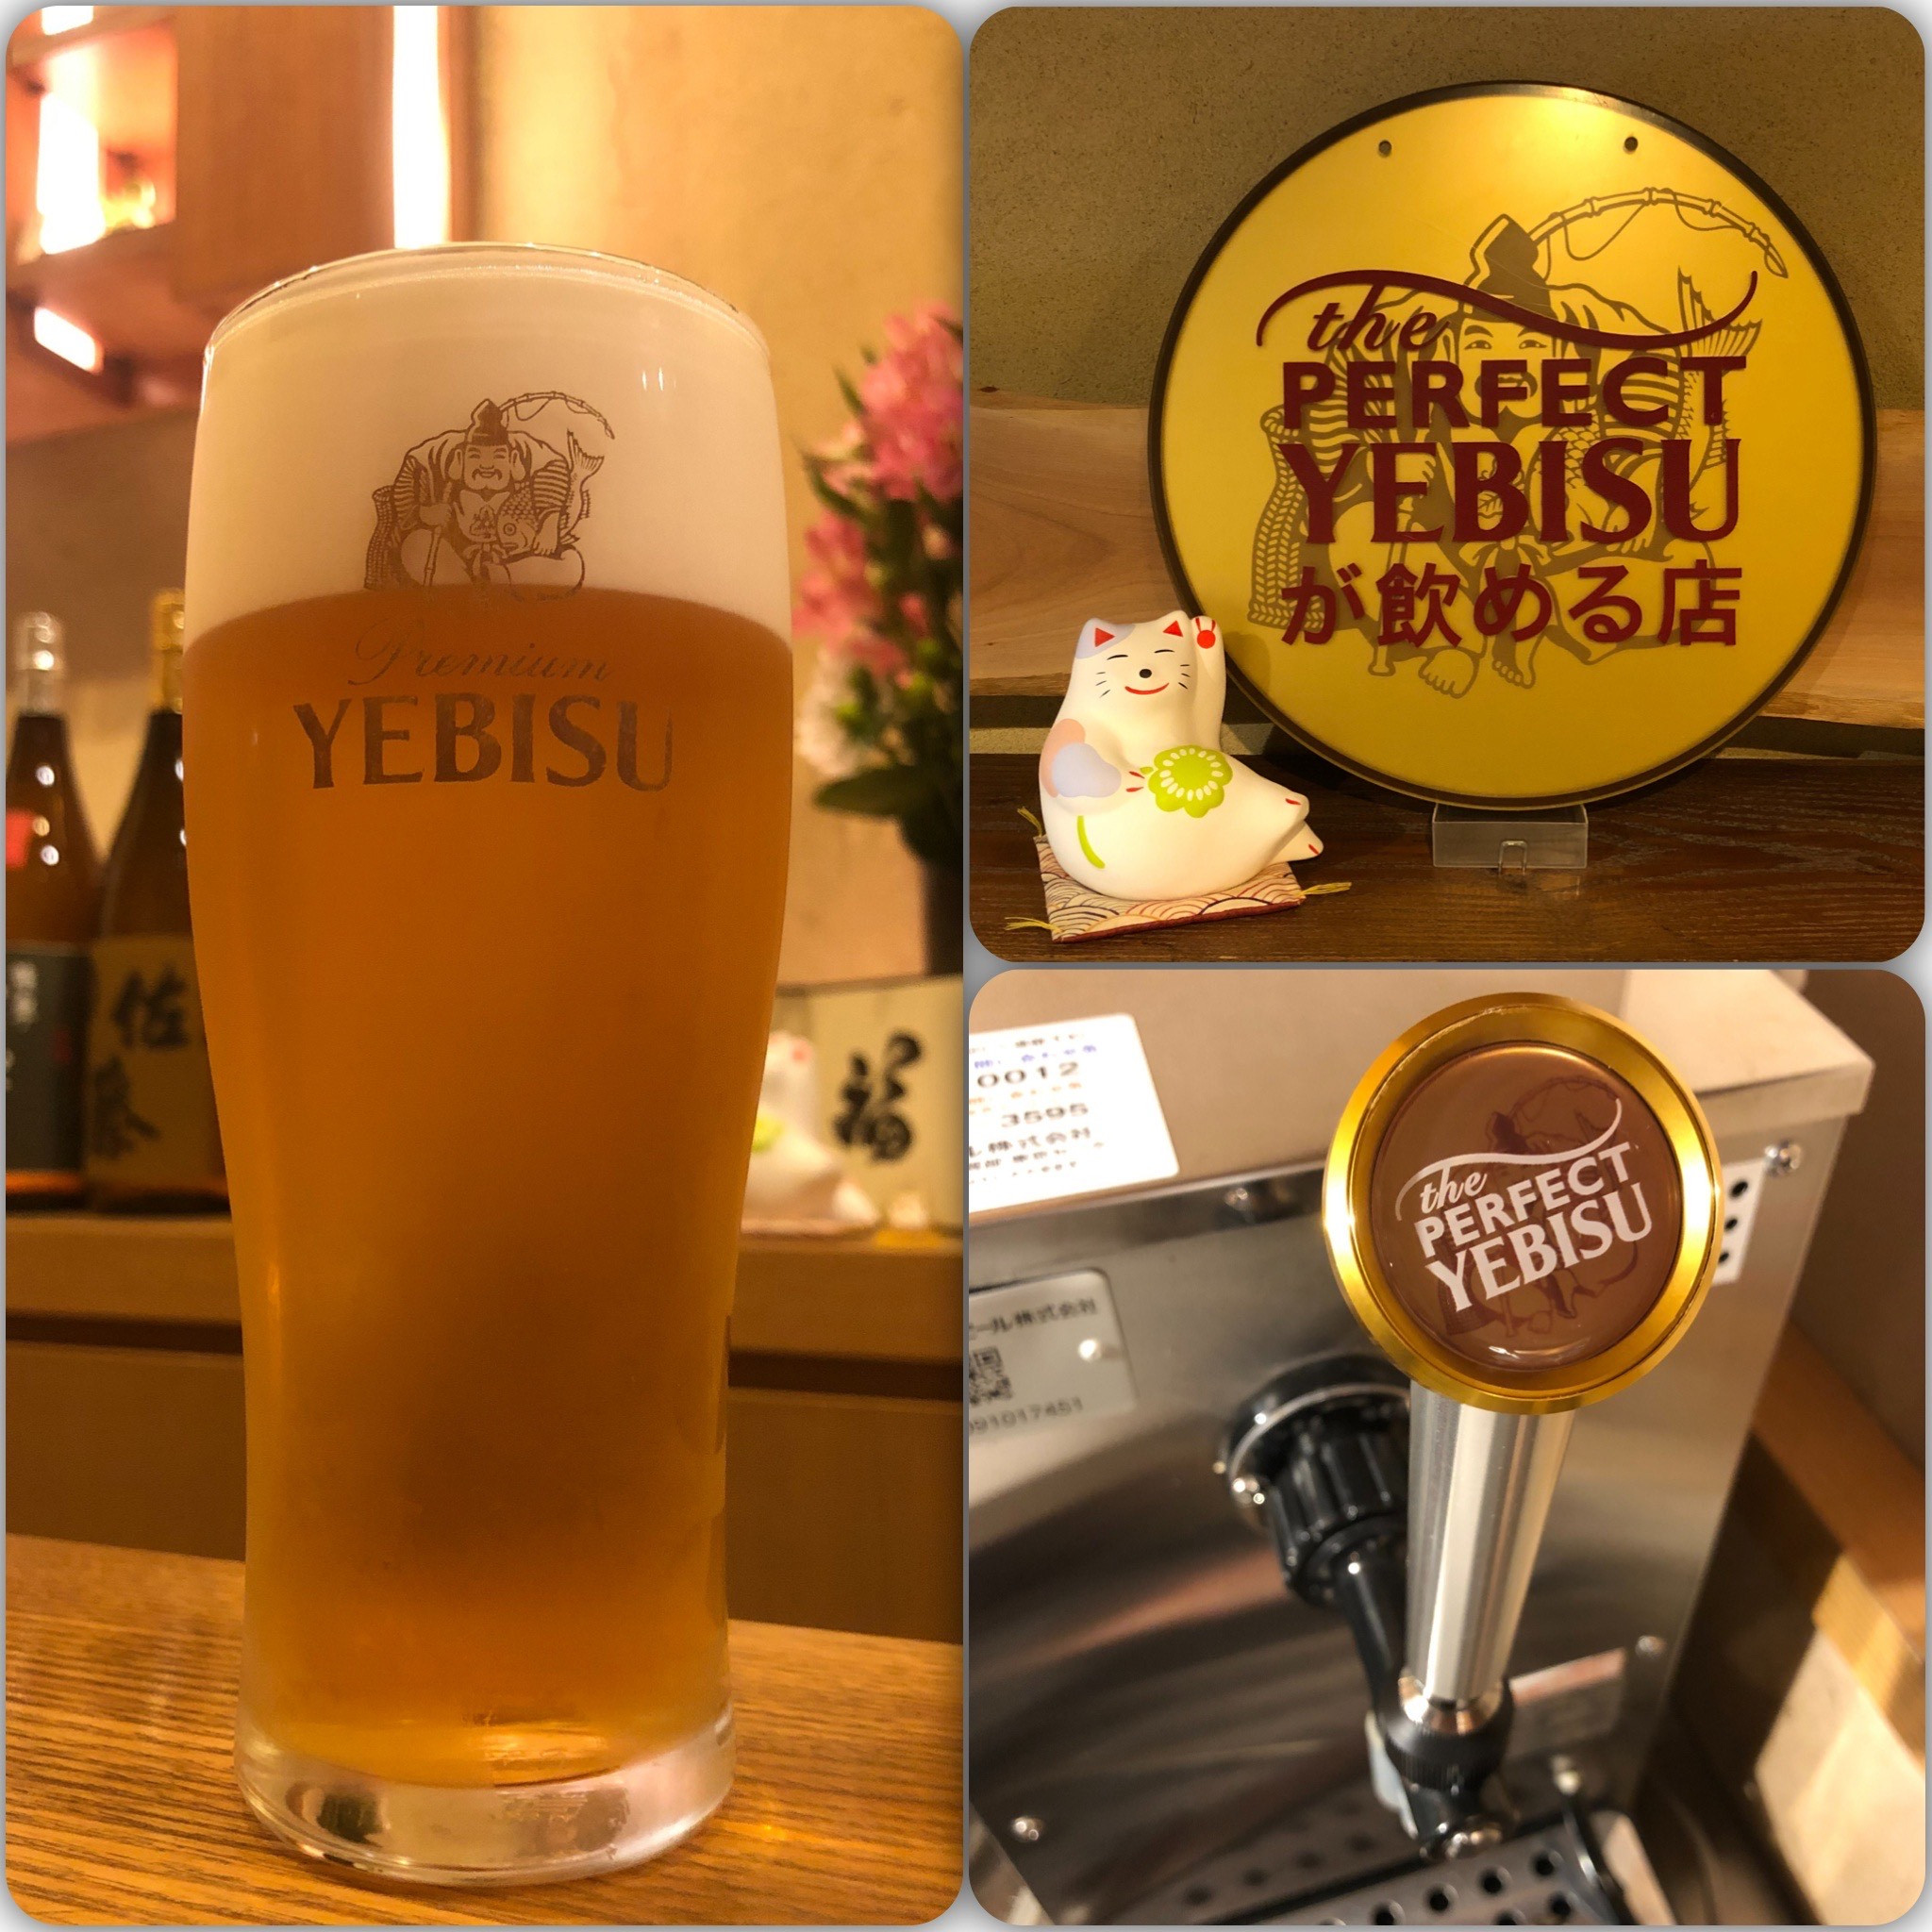 《 the PERFECT YEBISU が飲める店 》